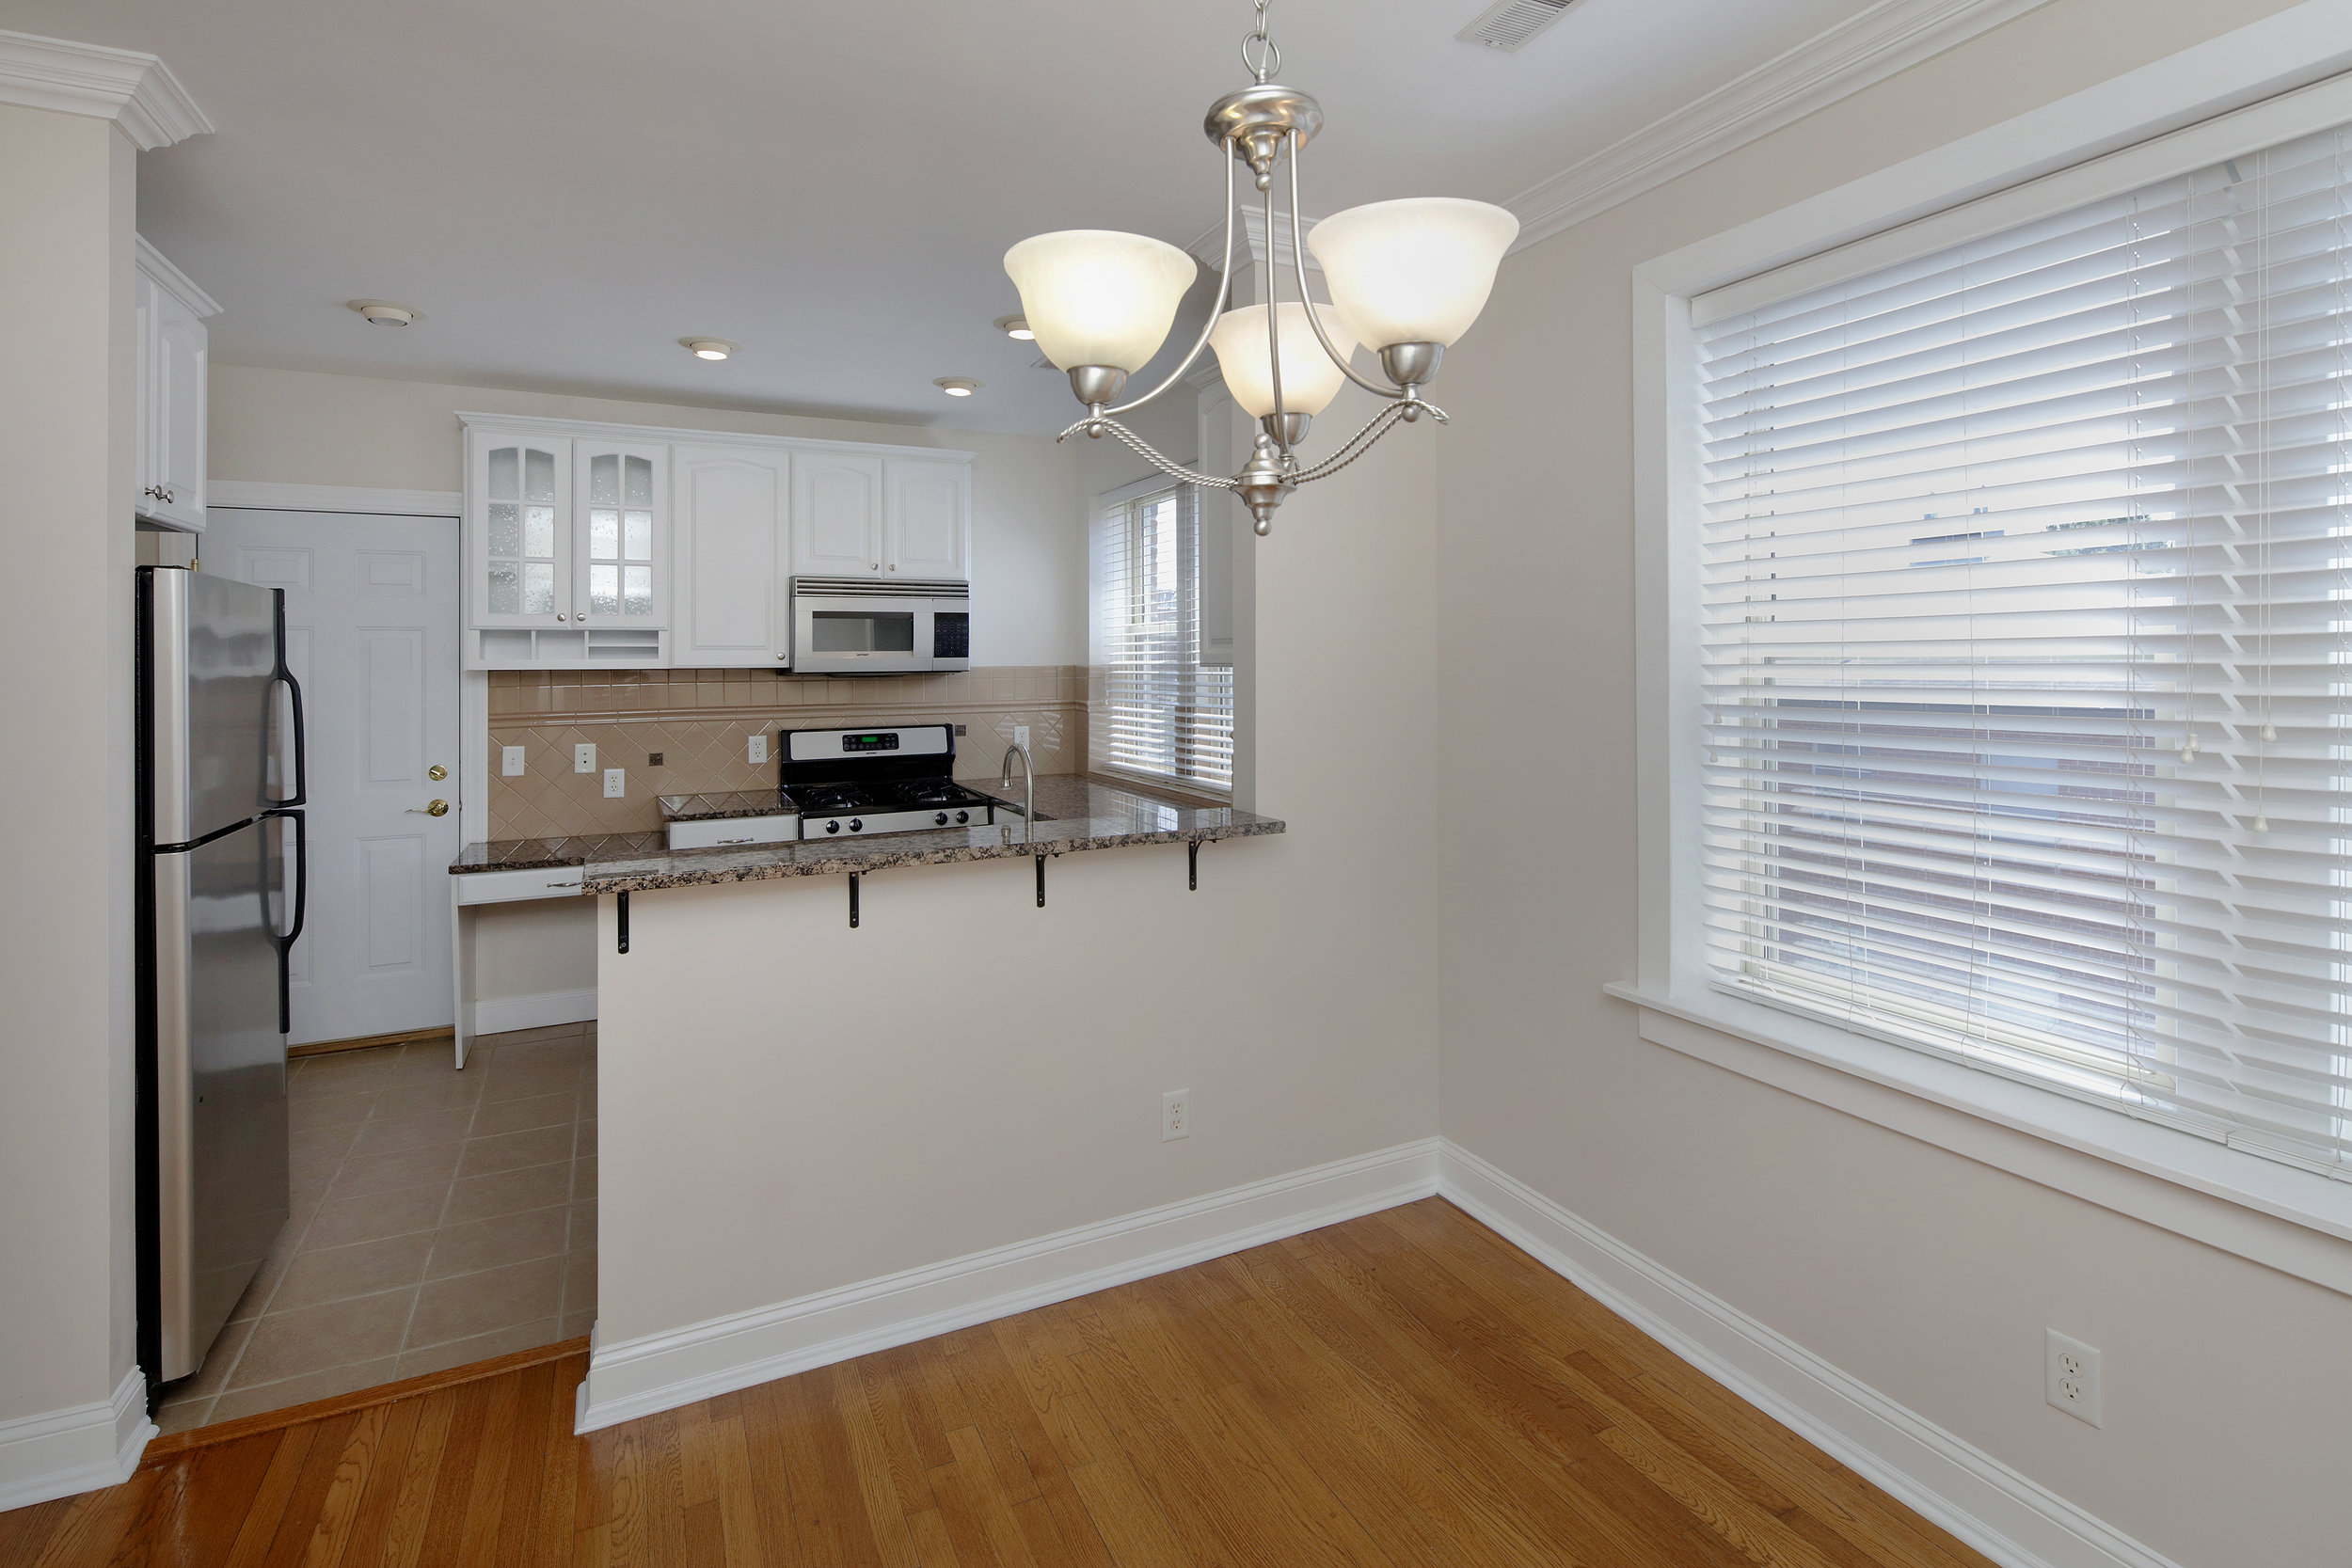 2 Bed Large Dining Room